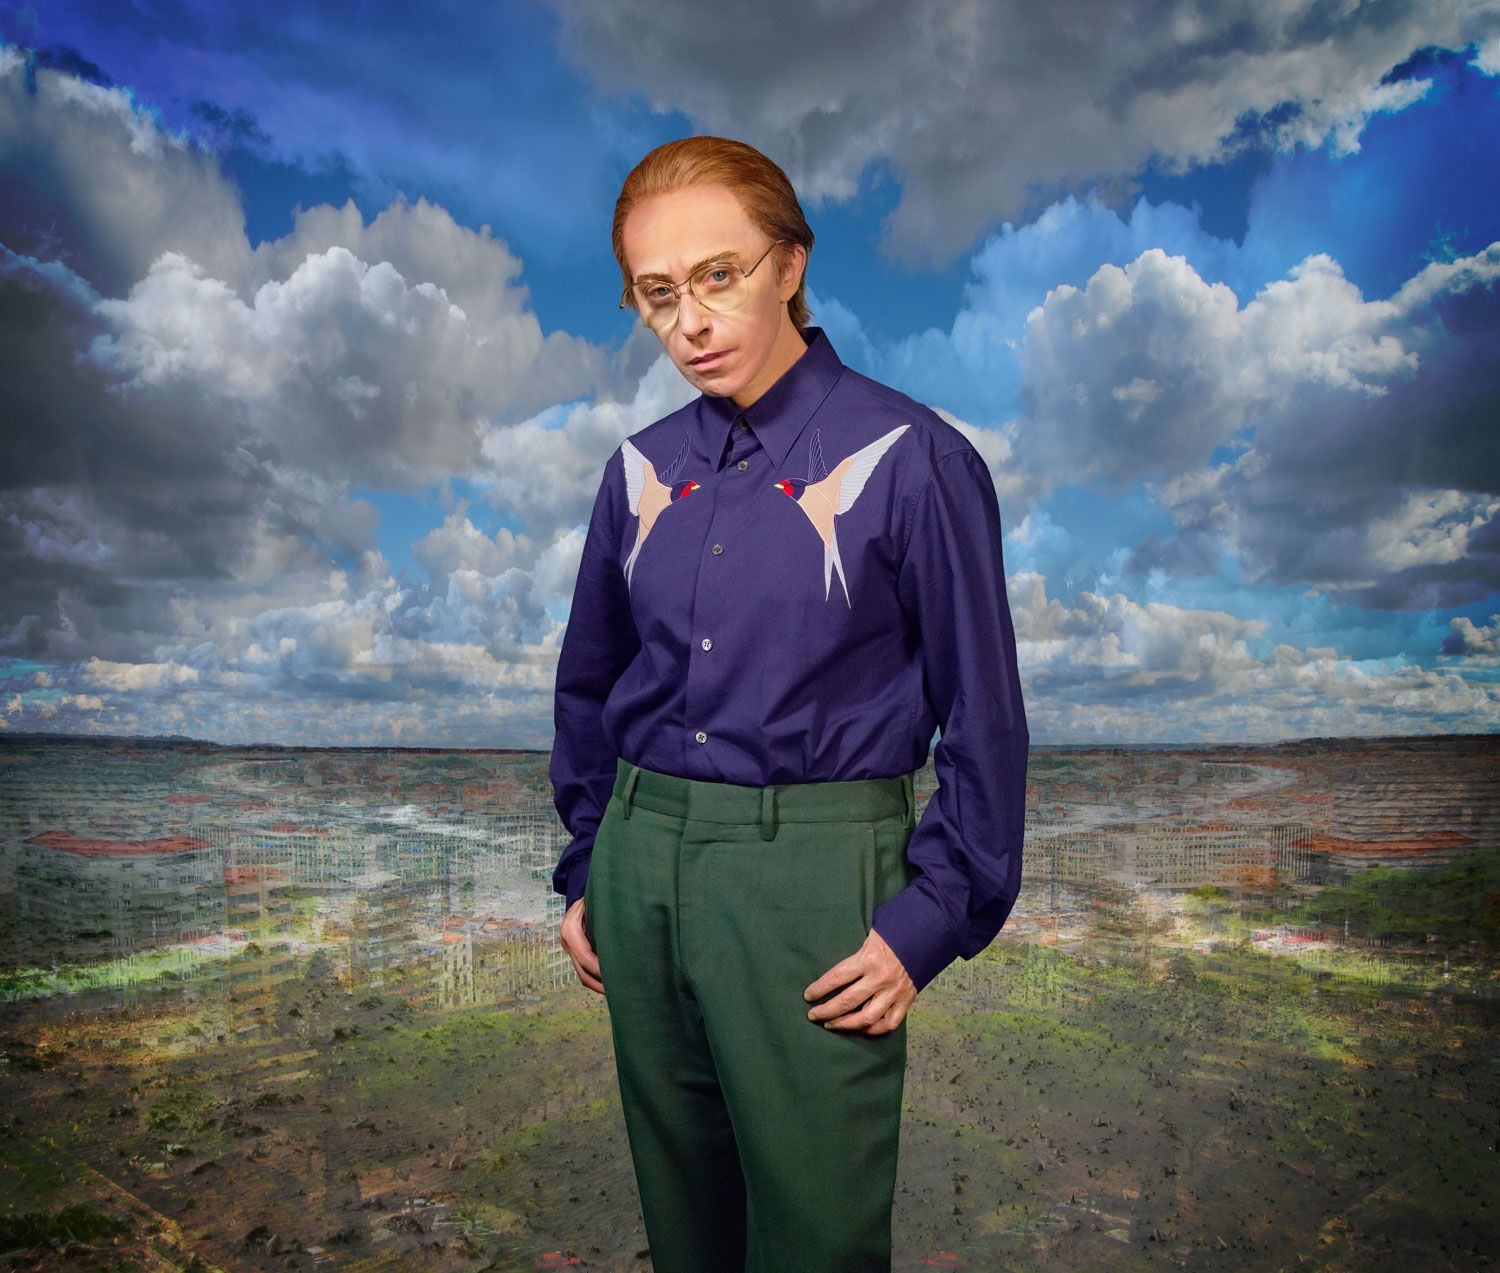 Cindy Sherman dressed as male feminine male playing on Identity, Androgyny and masculinity.